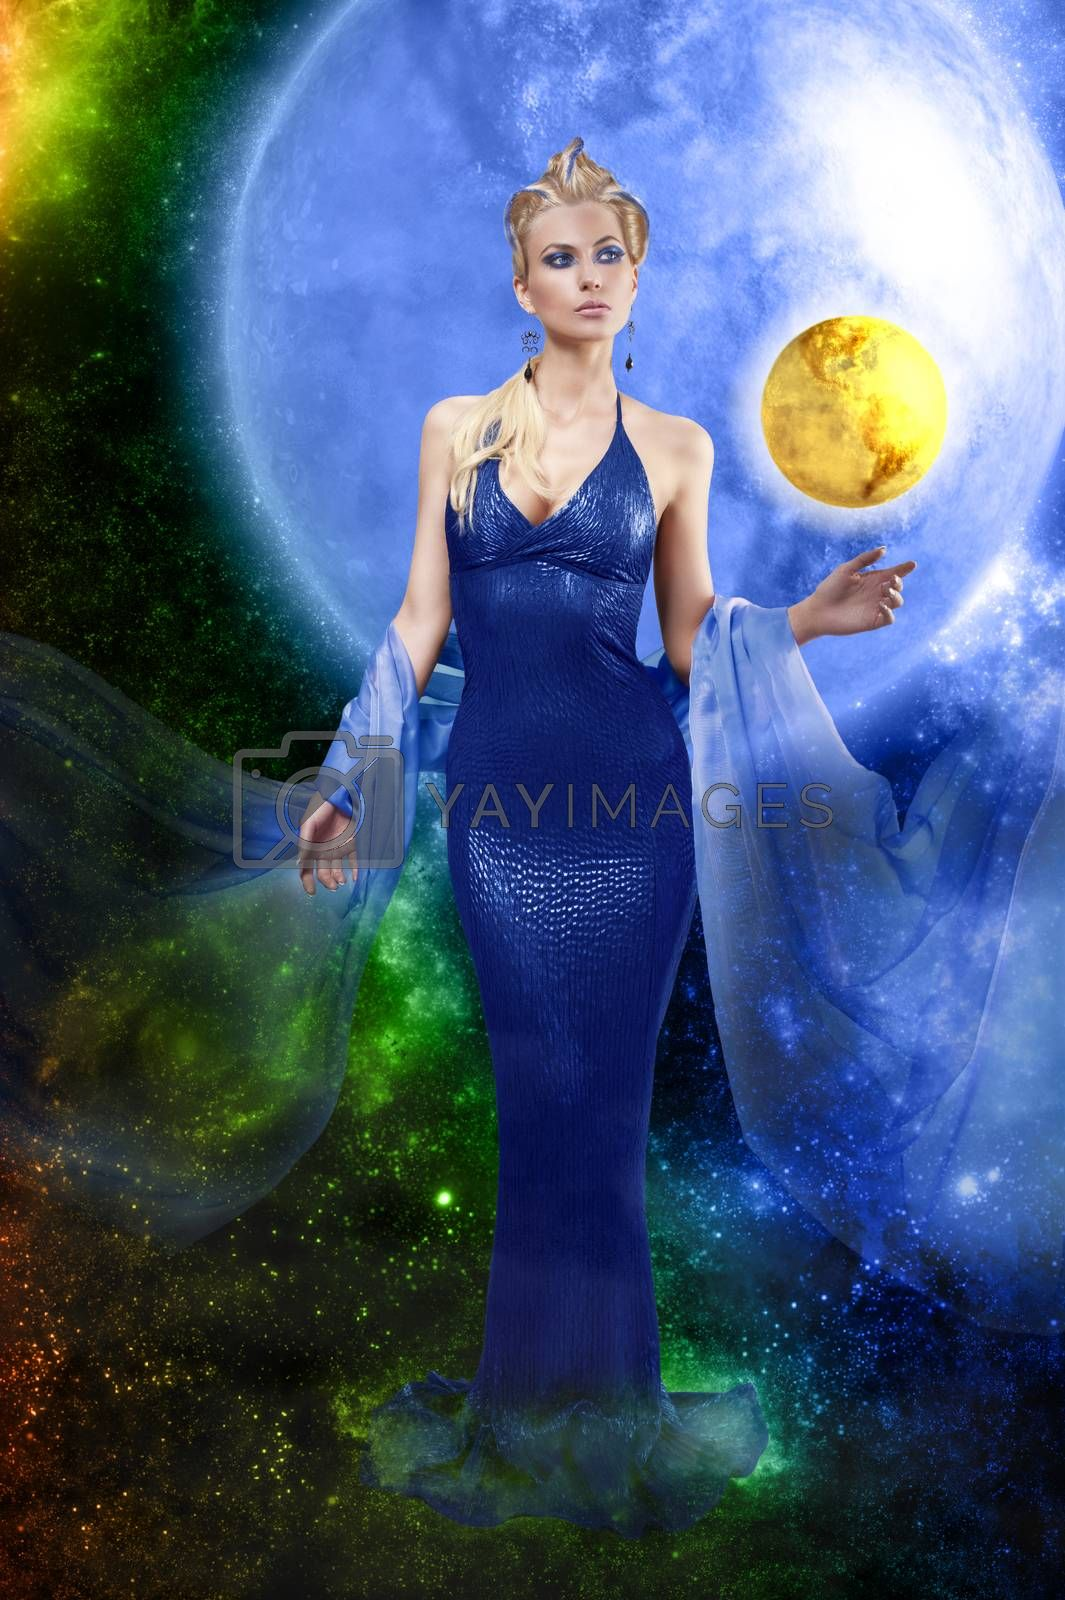 Royalty free image of E.T. lady with golden planet by fotoCD